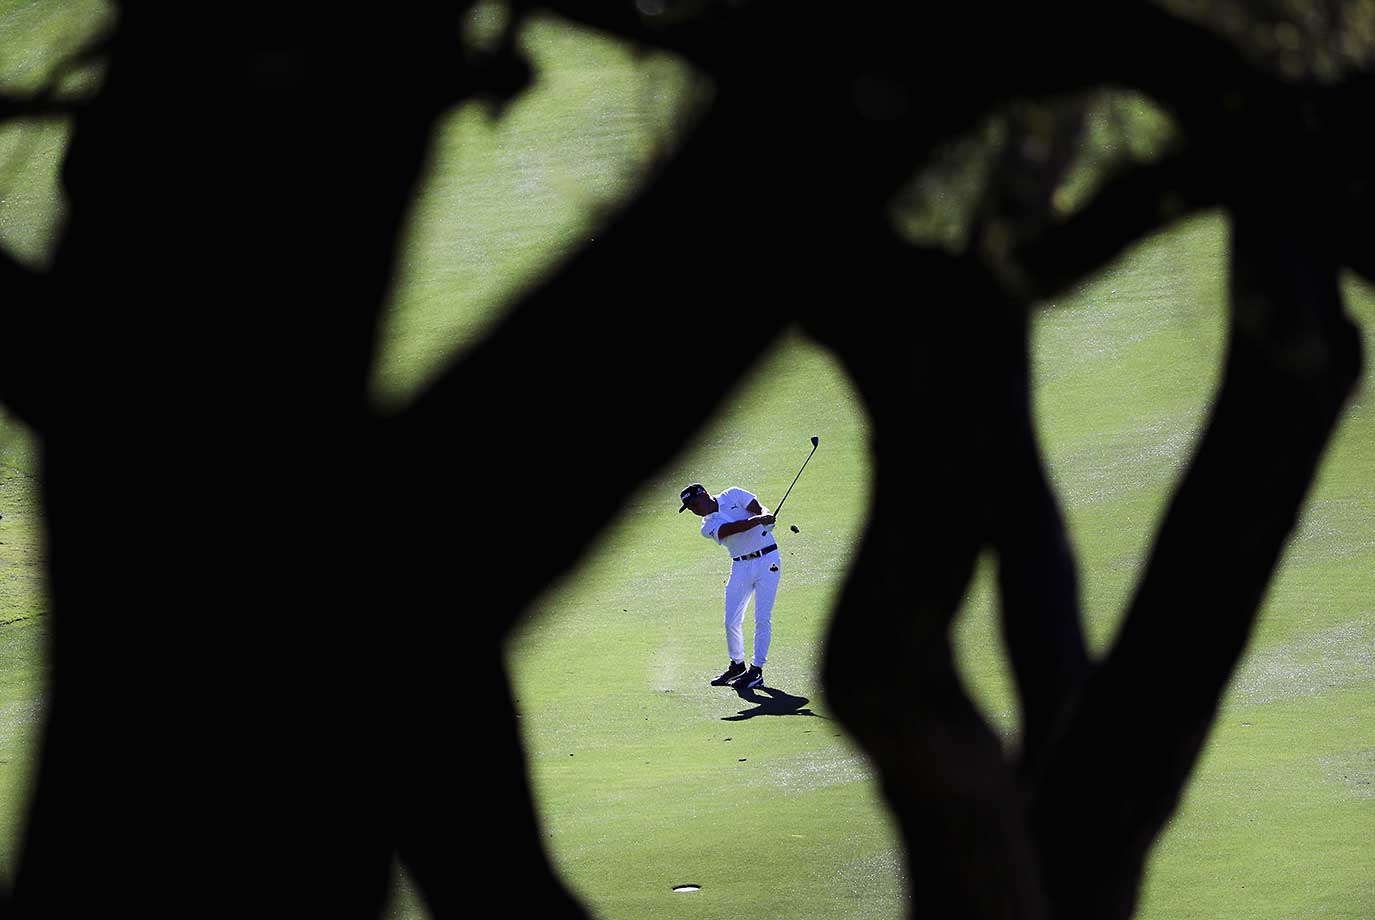 Rickie Fowler of the United States plays a shot on the ninth hole during the second round of the World Golf Championships-Dell Match Play in Austin, Texas.